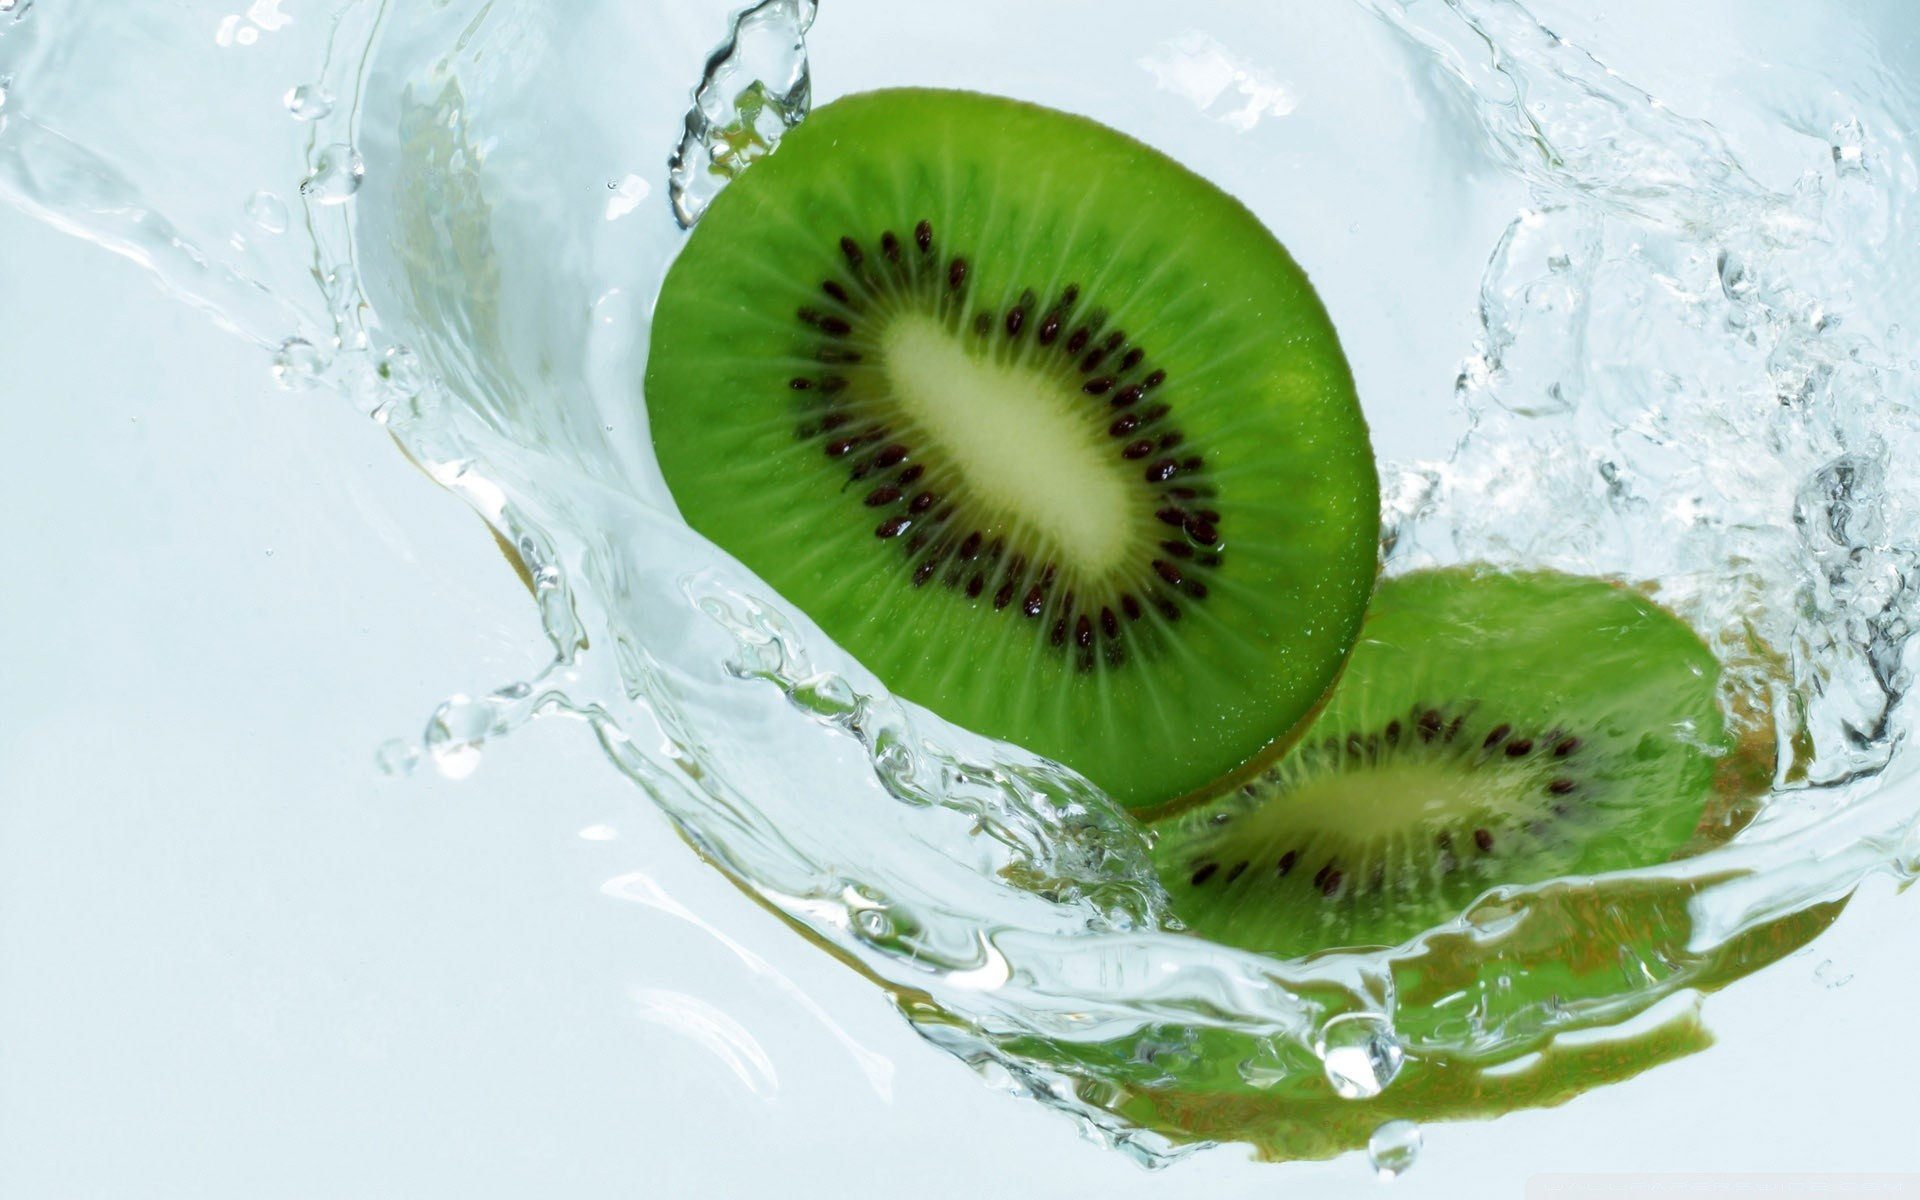 water fruit macro splashes kiwi (fruit)